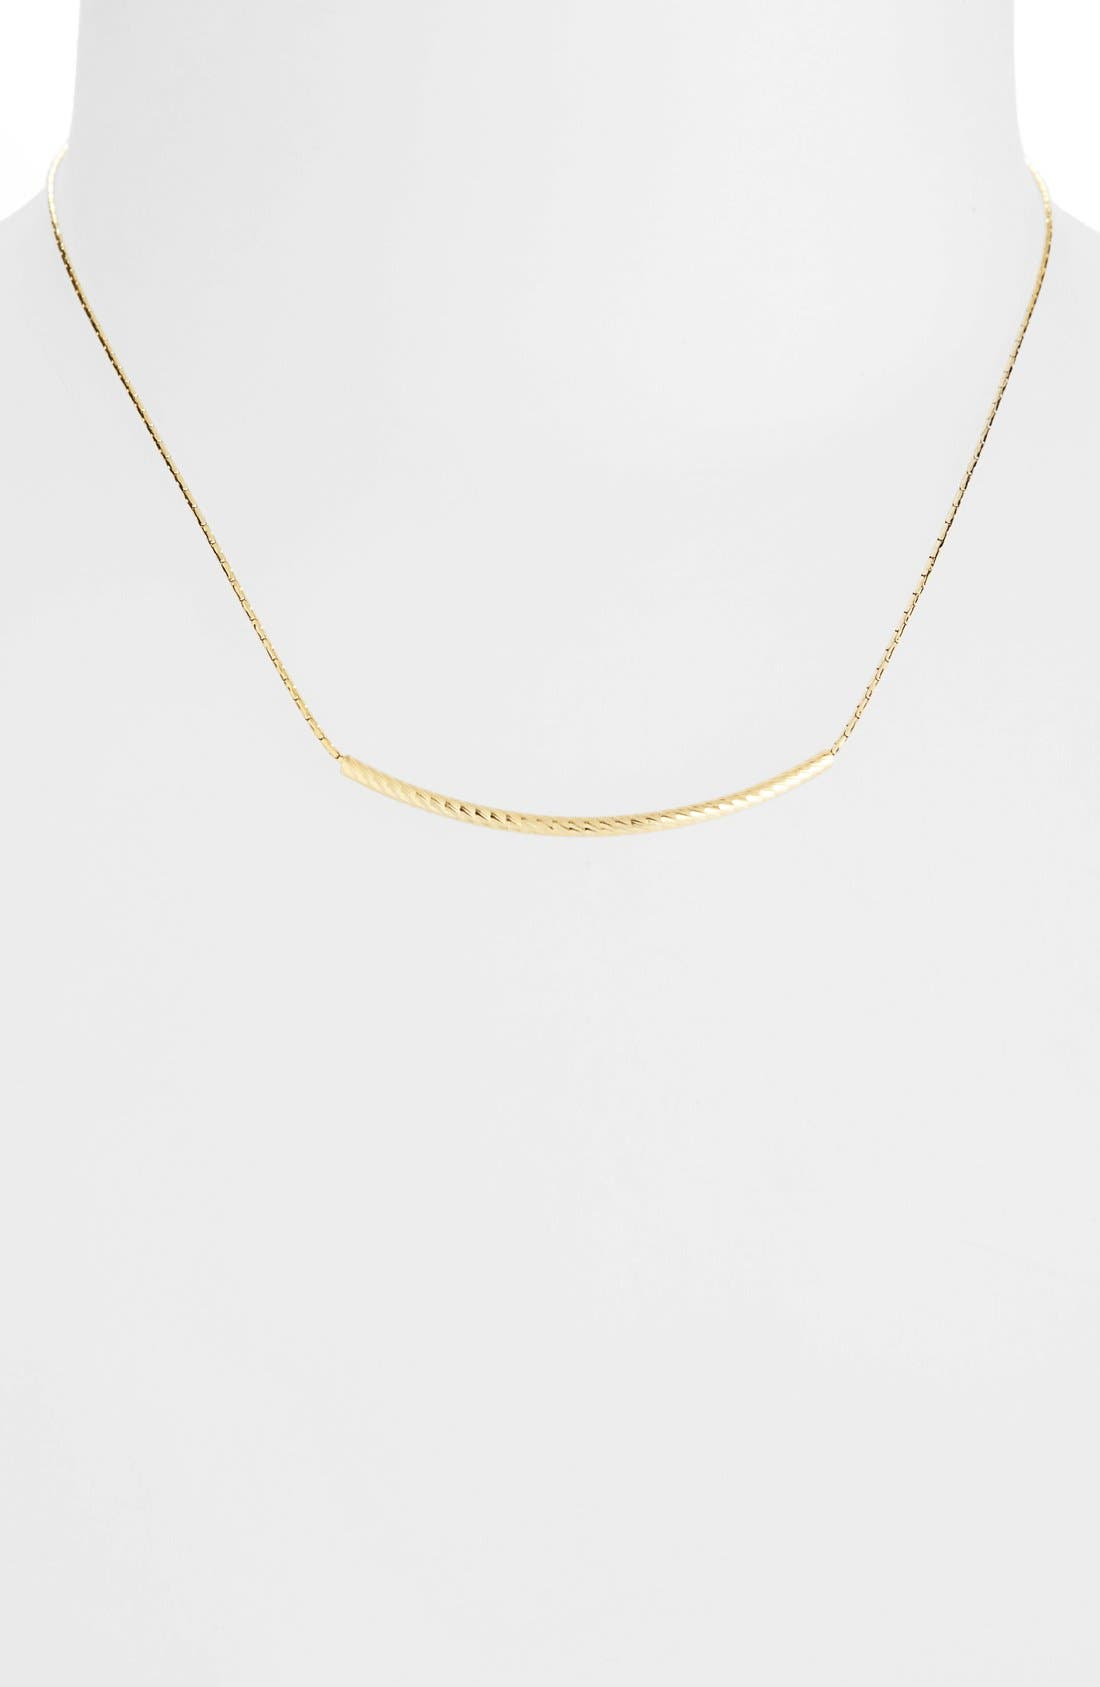 Alternate Image 2  - Bony Levy 14k Gold Curved Bar Necklace (Nordstrom Exclusive)